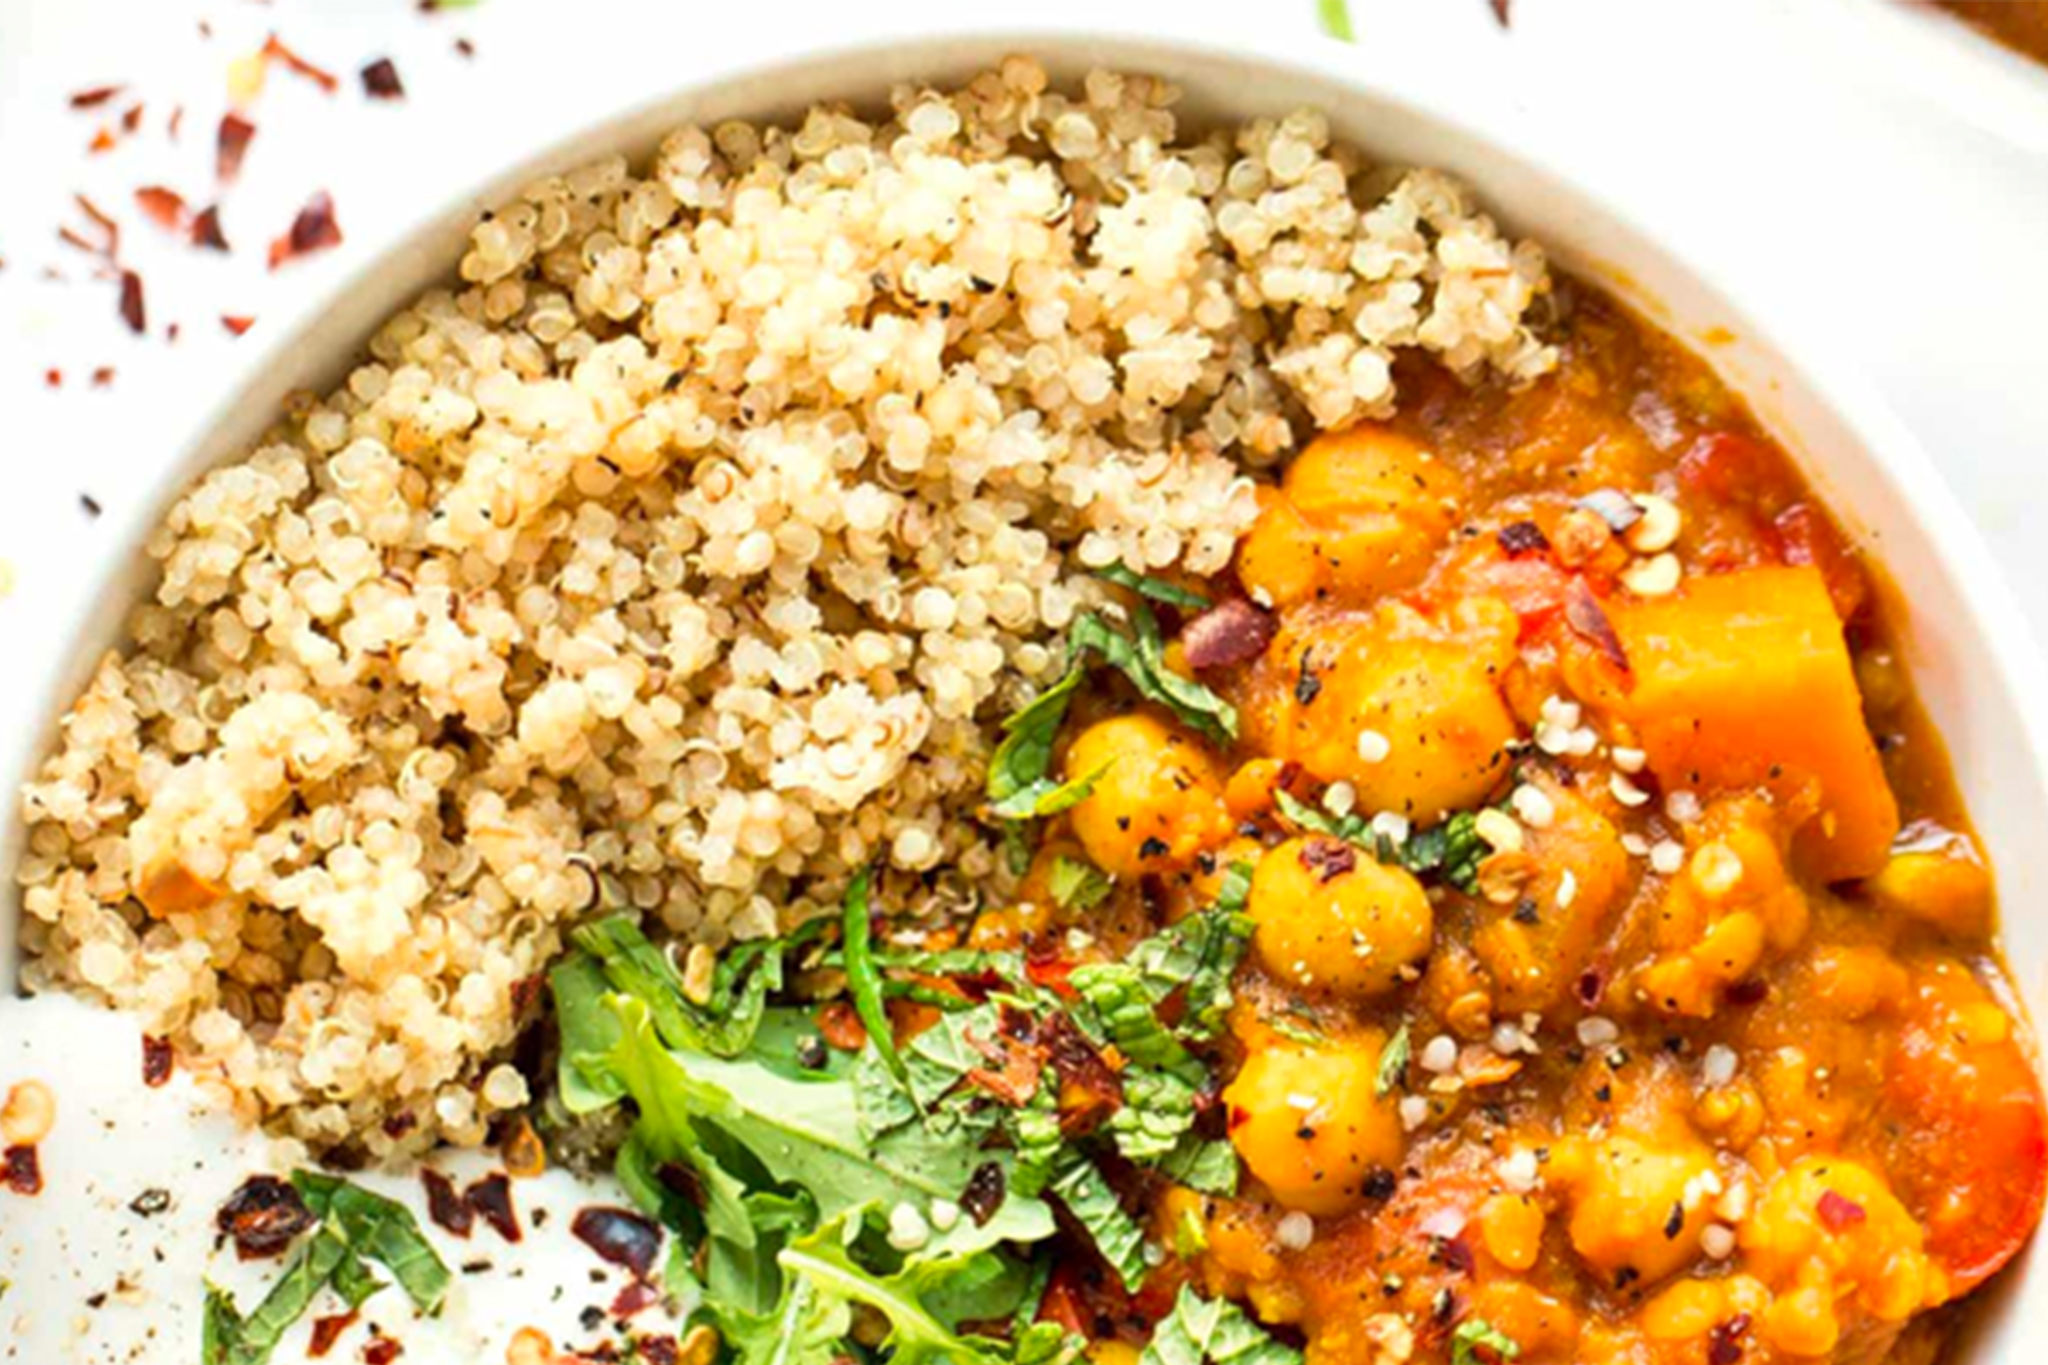 Corporate Cookbook: Slow Cooker Moroccan Chickpea Stew